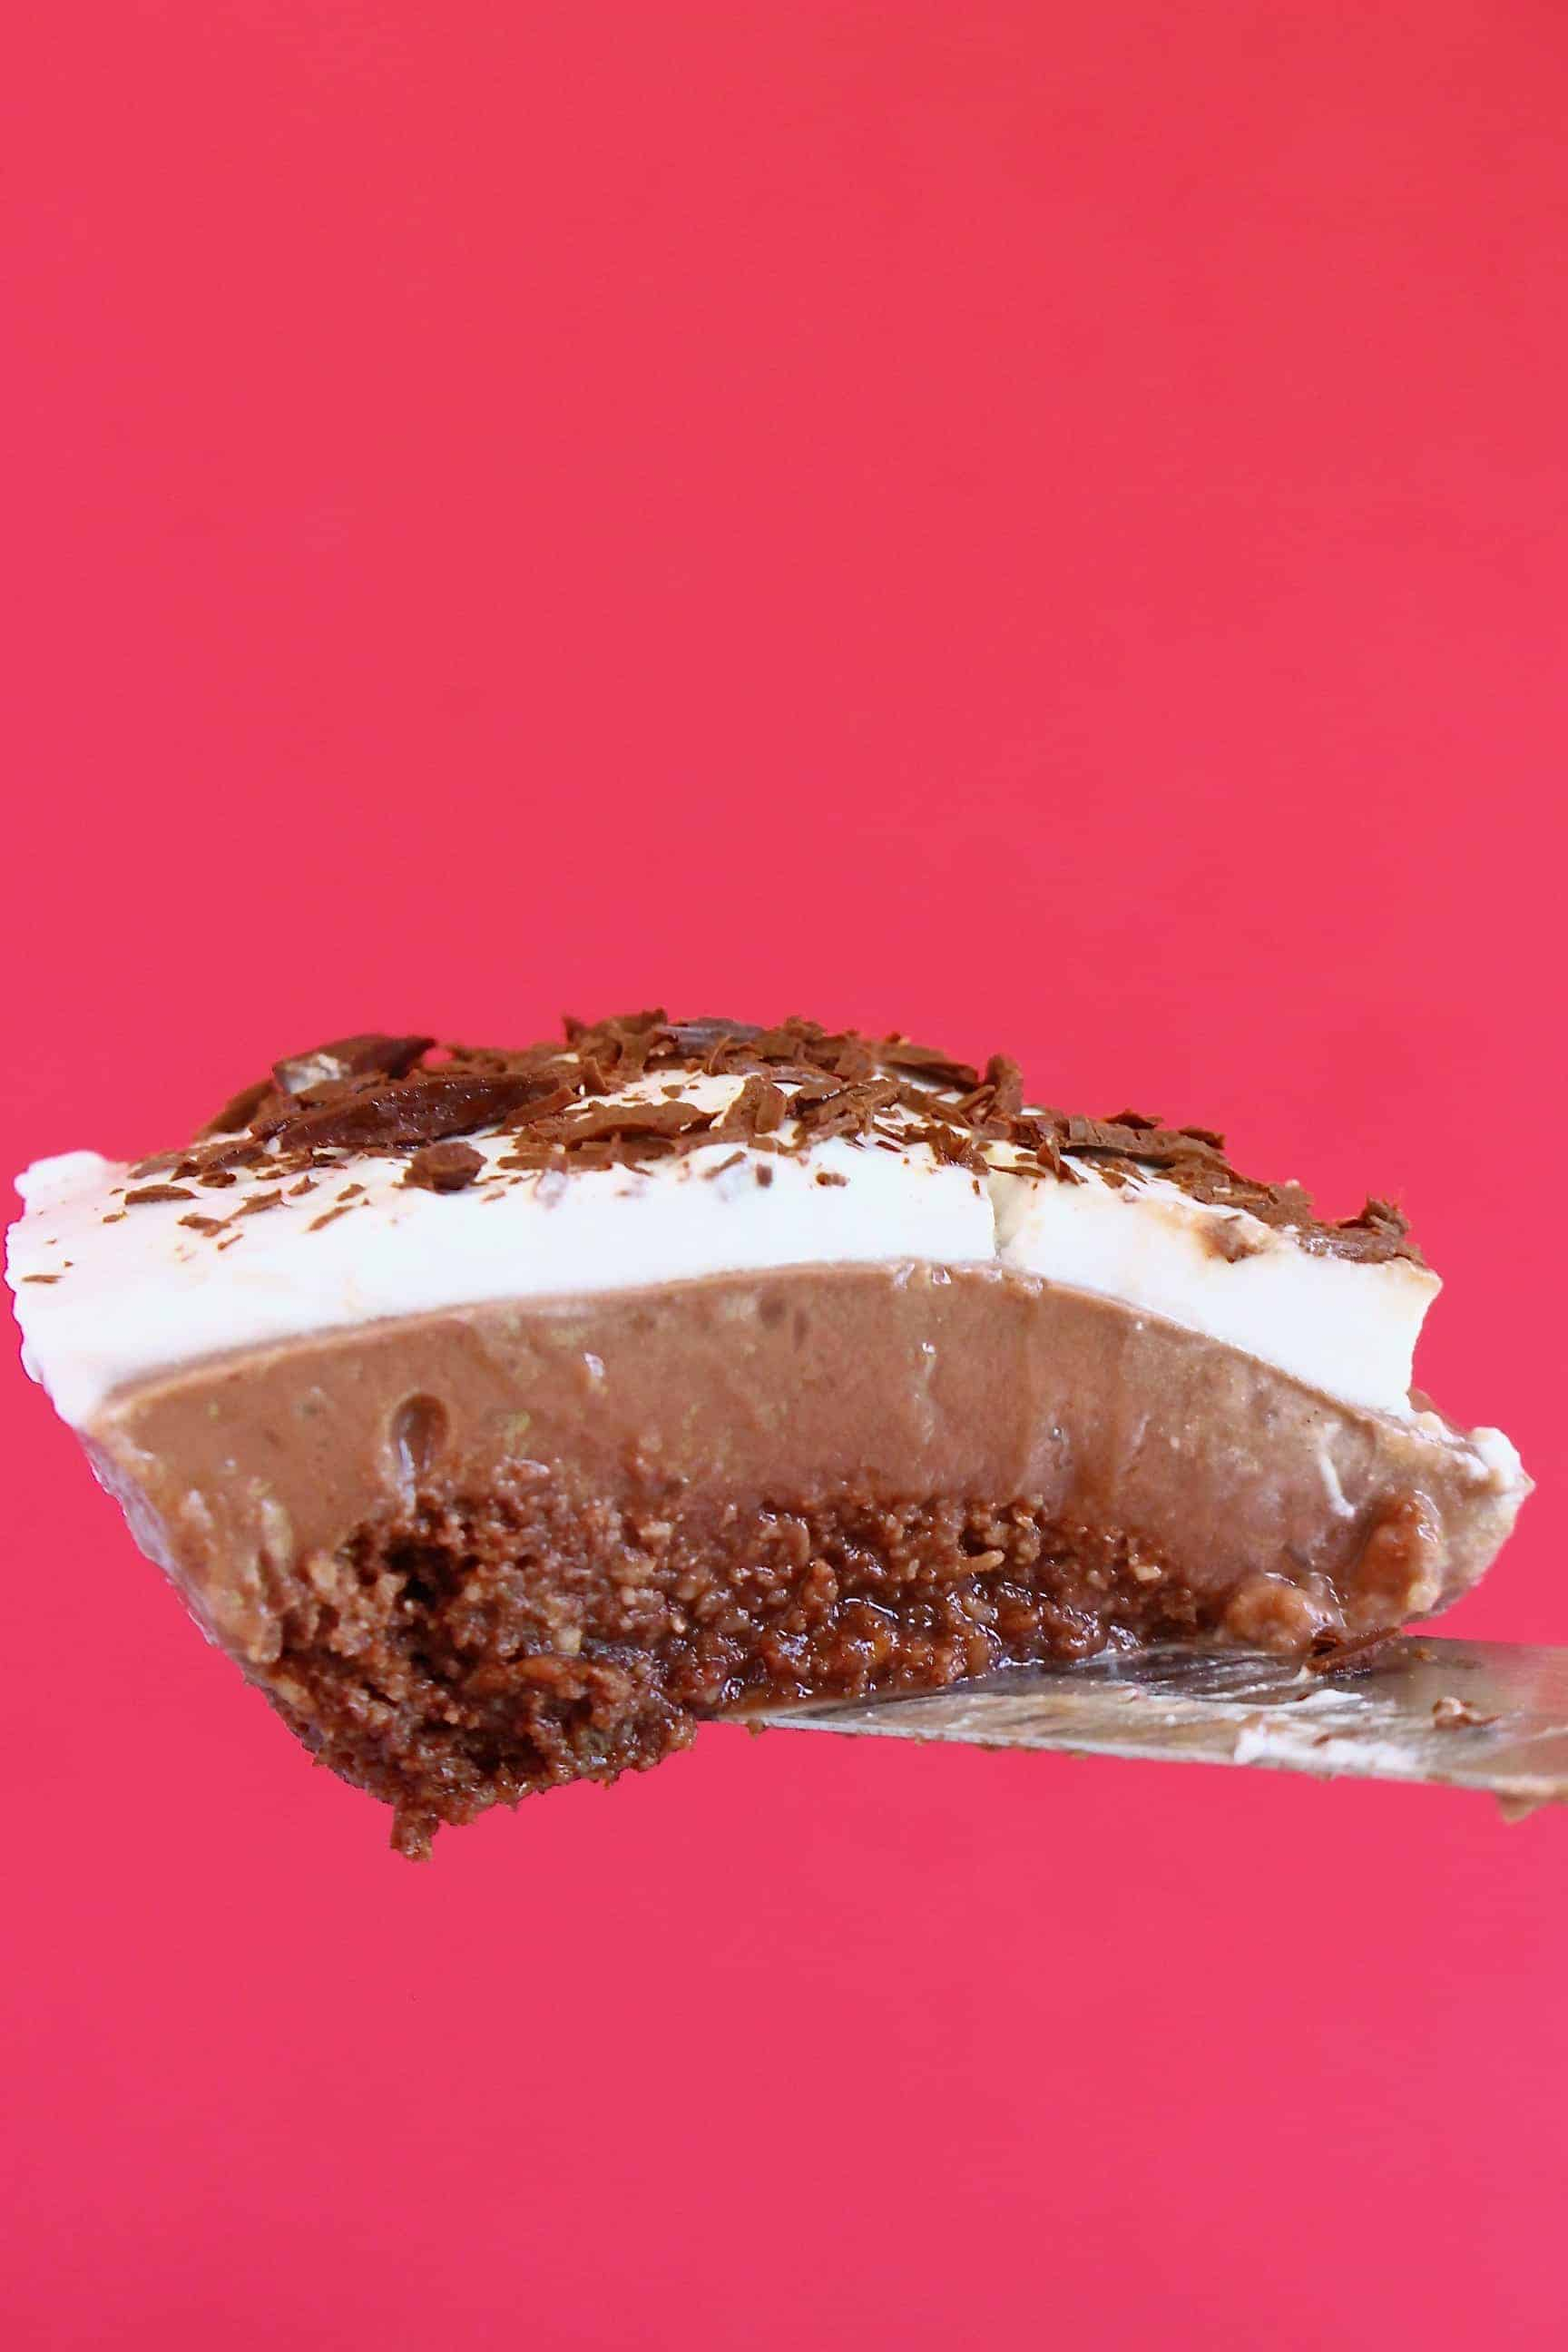 A slice of chocolate pie topped with whipped cream and chocolate shavings